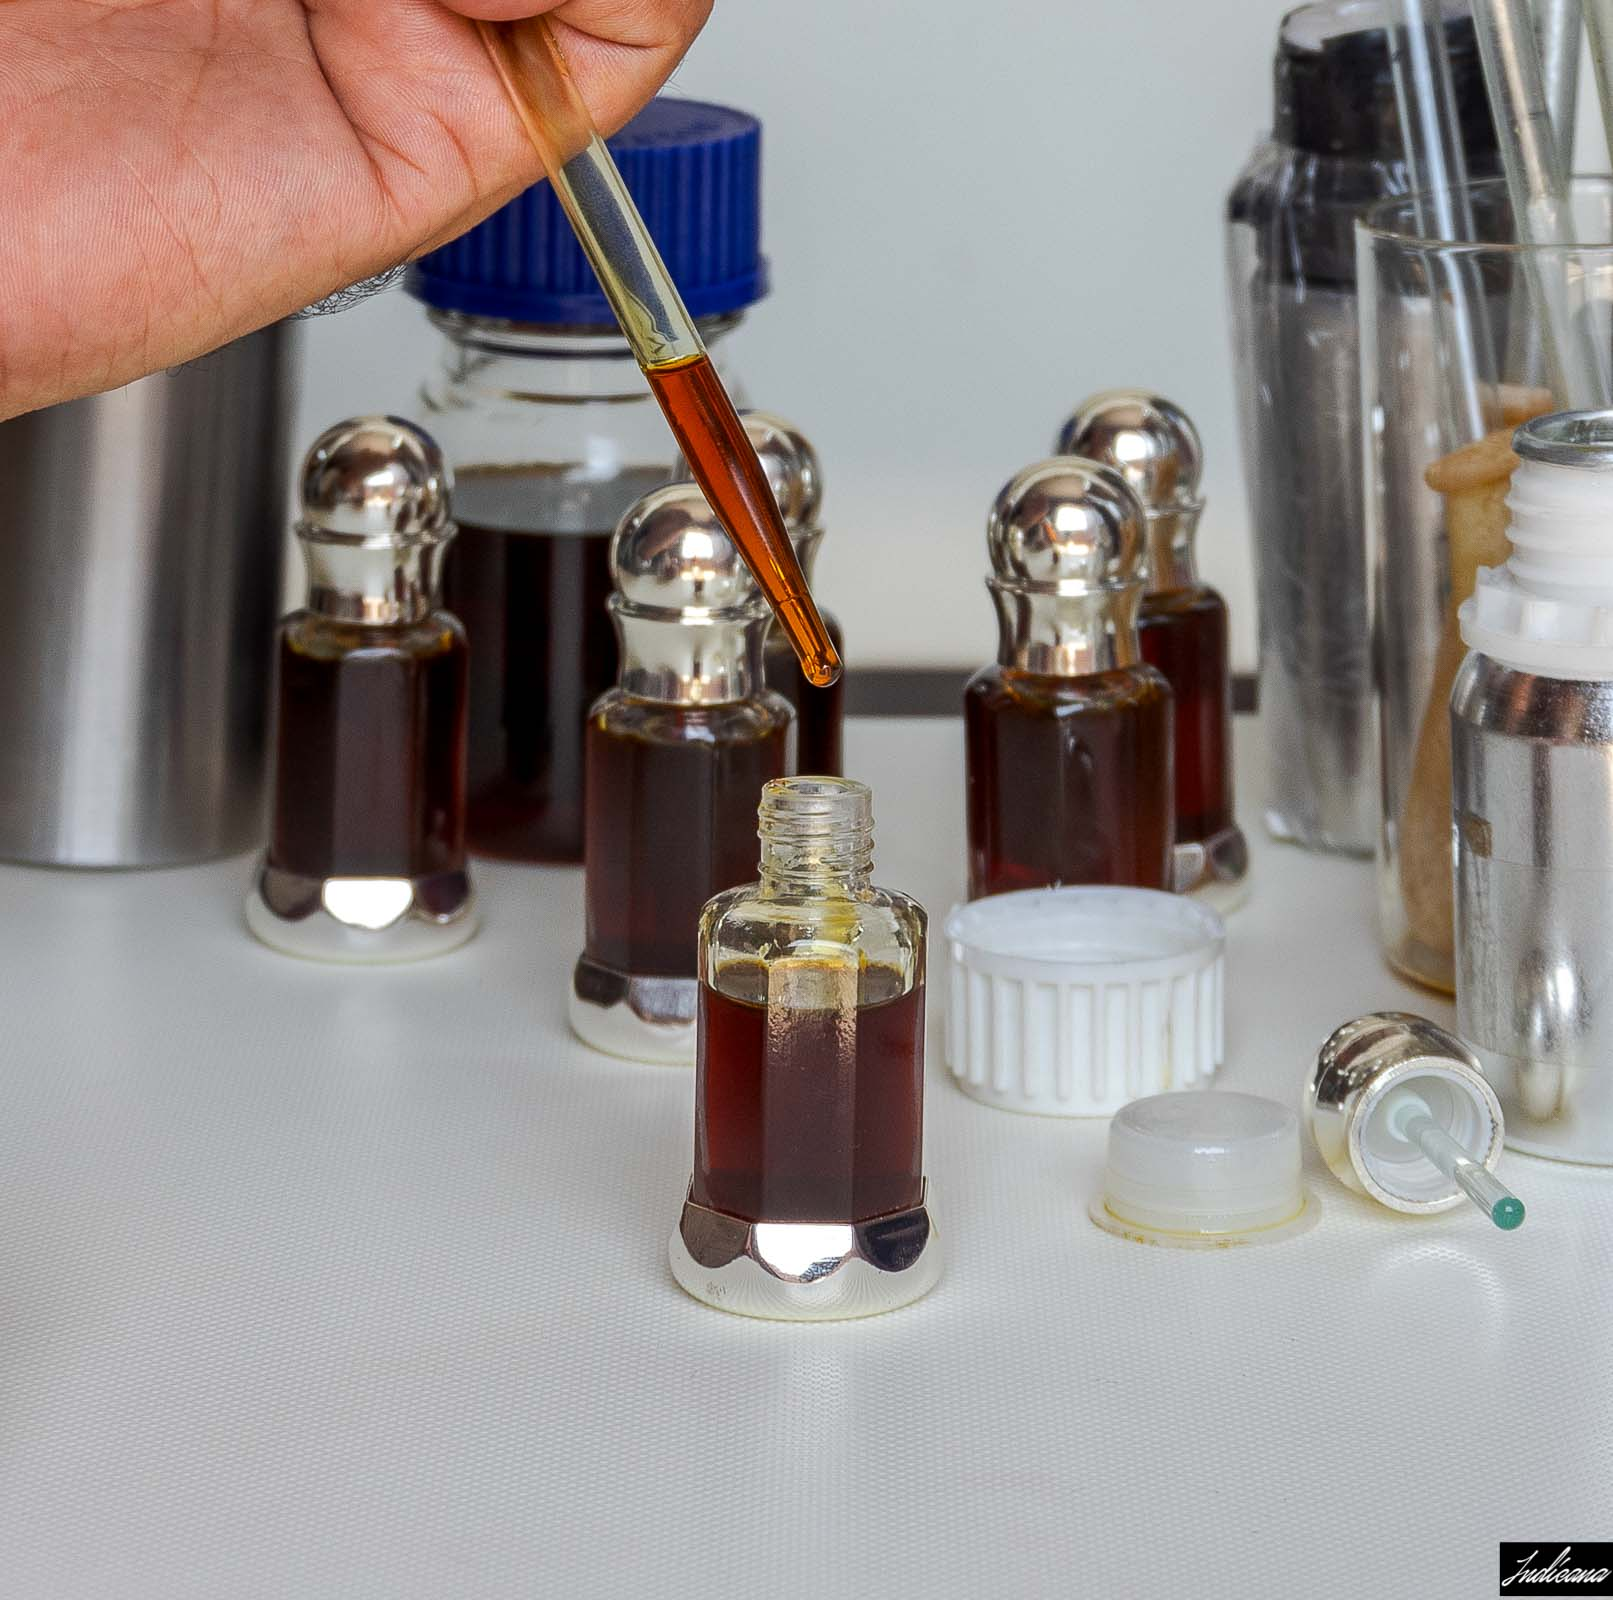 Oud Oil from India Being Transferred to Bottles